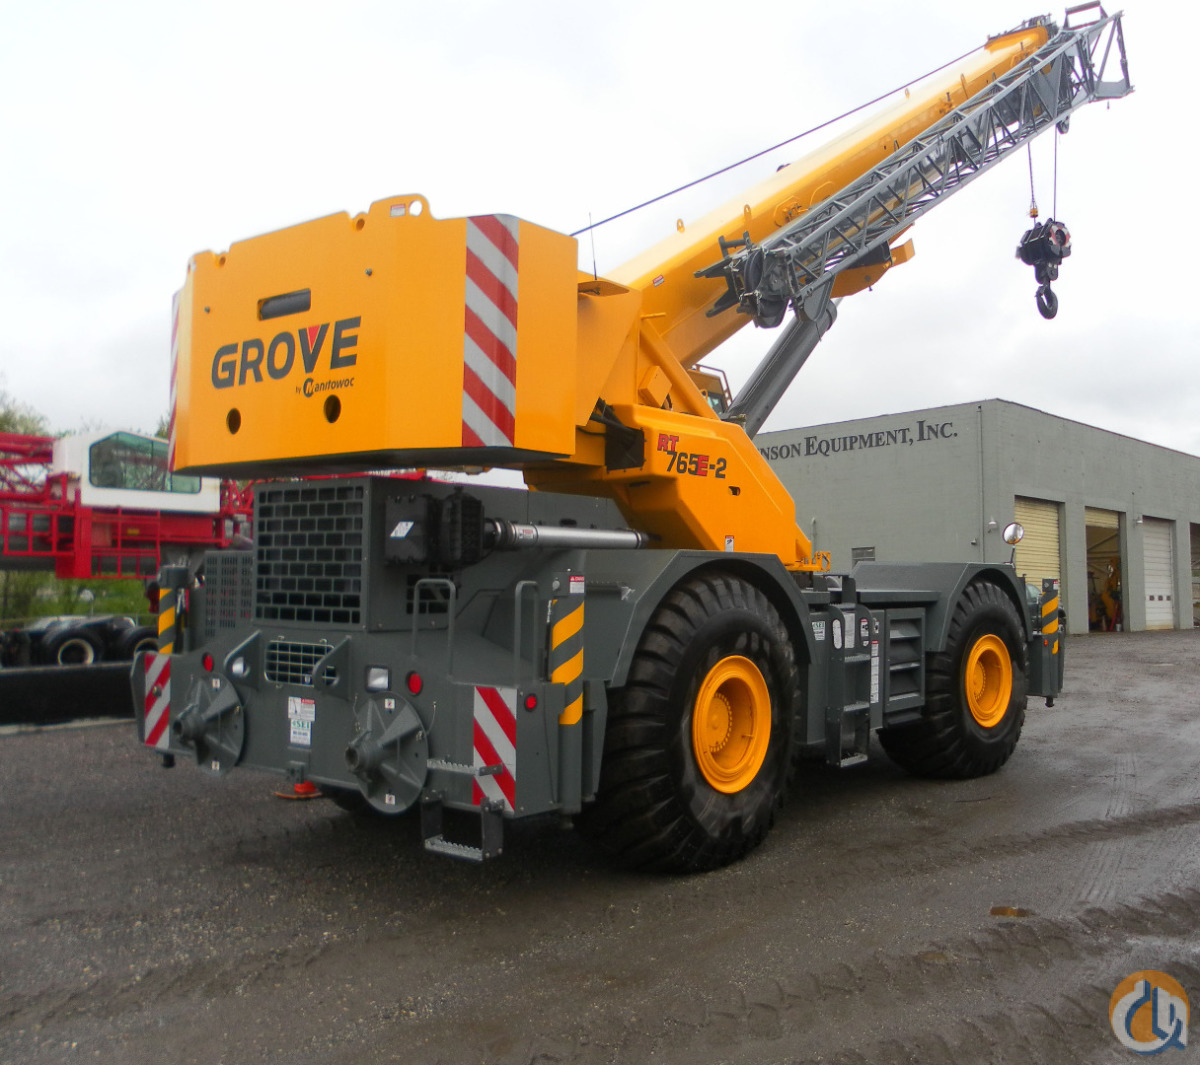 2012 Grove RT765E-2 Crane for Sale in Wilkes-Barre Pennsylvania on CraneNetworkcom